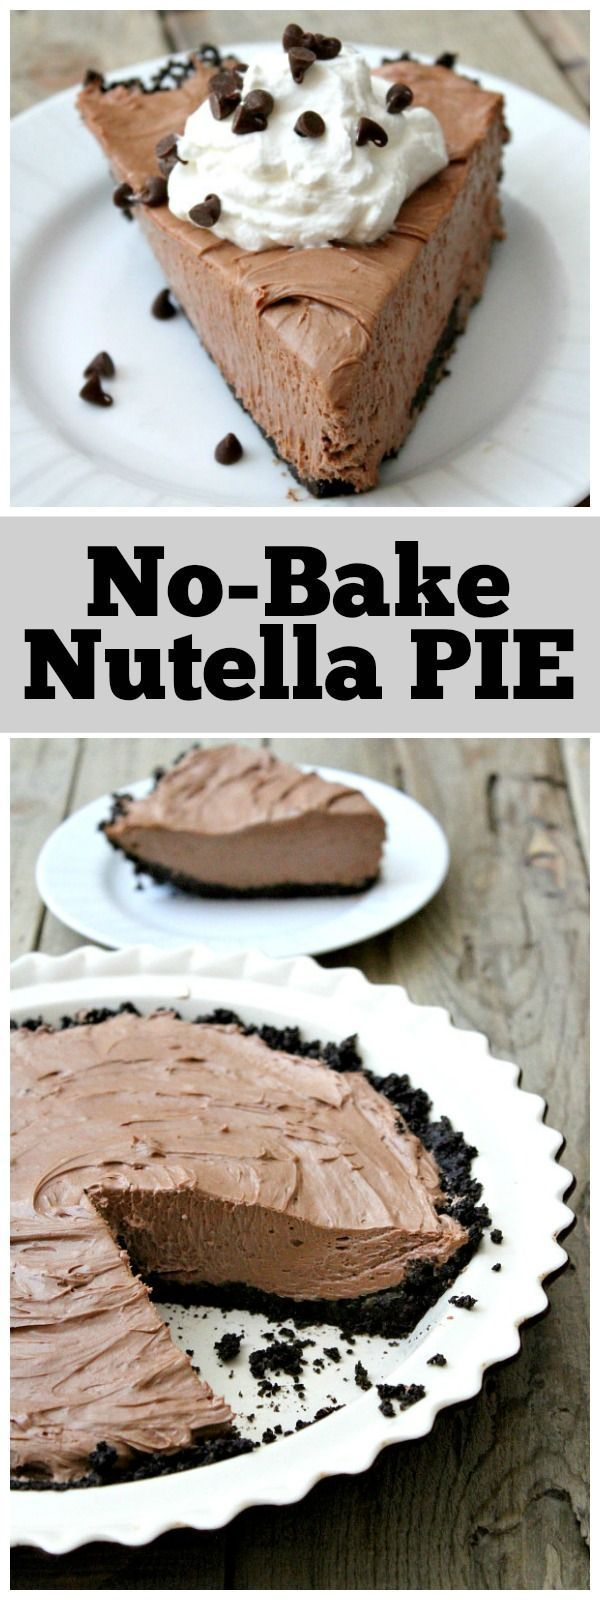 Easy No Bake Nutella Pie recipe from RecipeBoy.com : only 5 ingredients with optional garnishes.